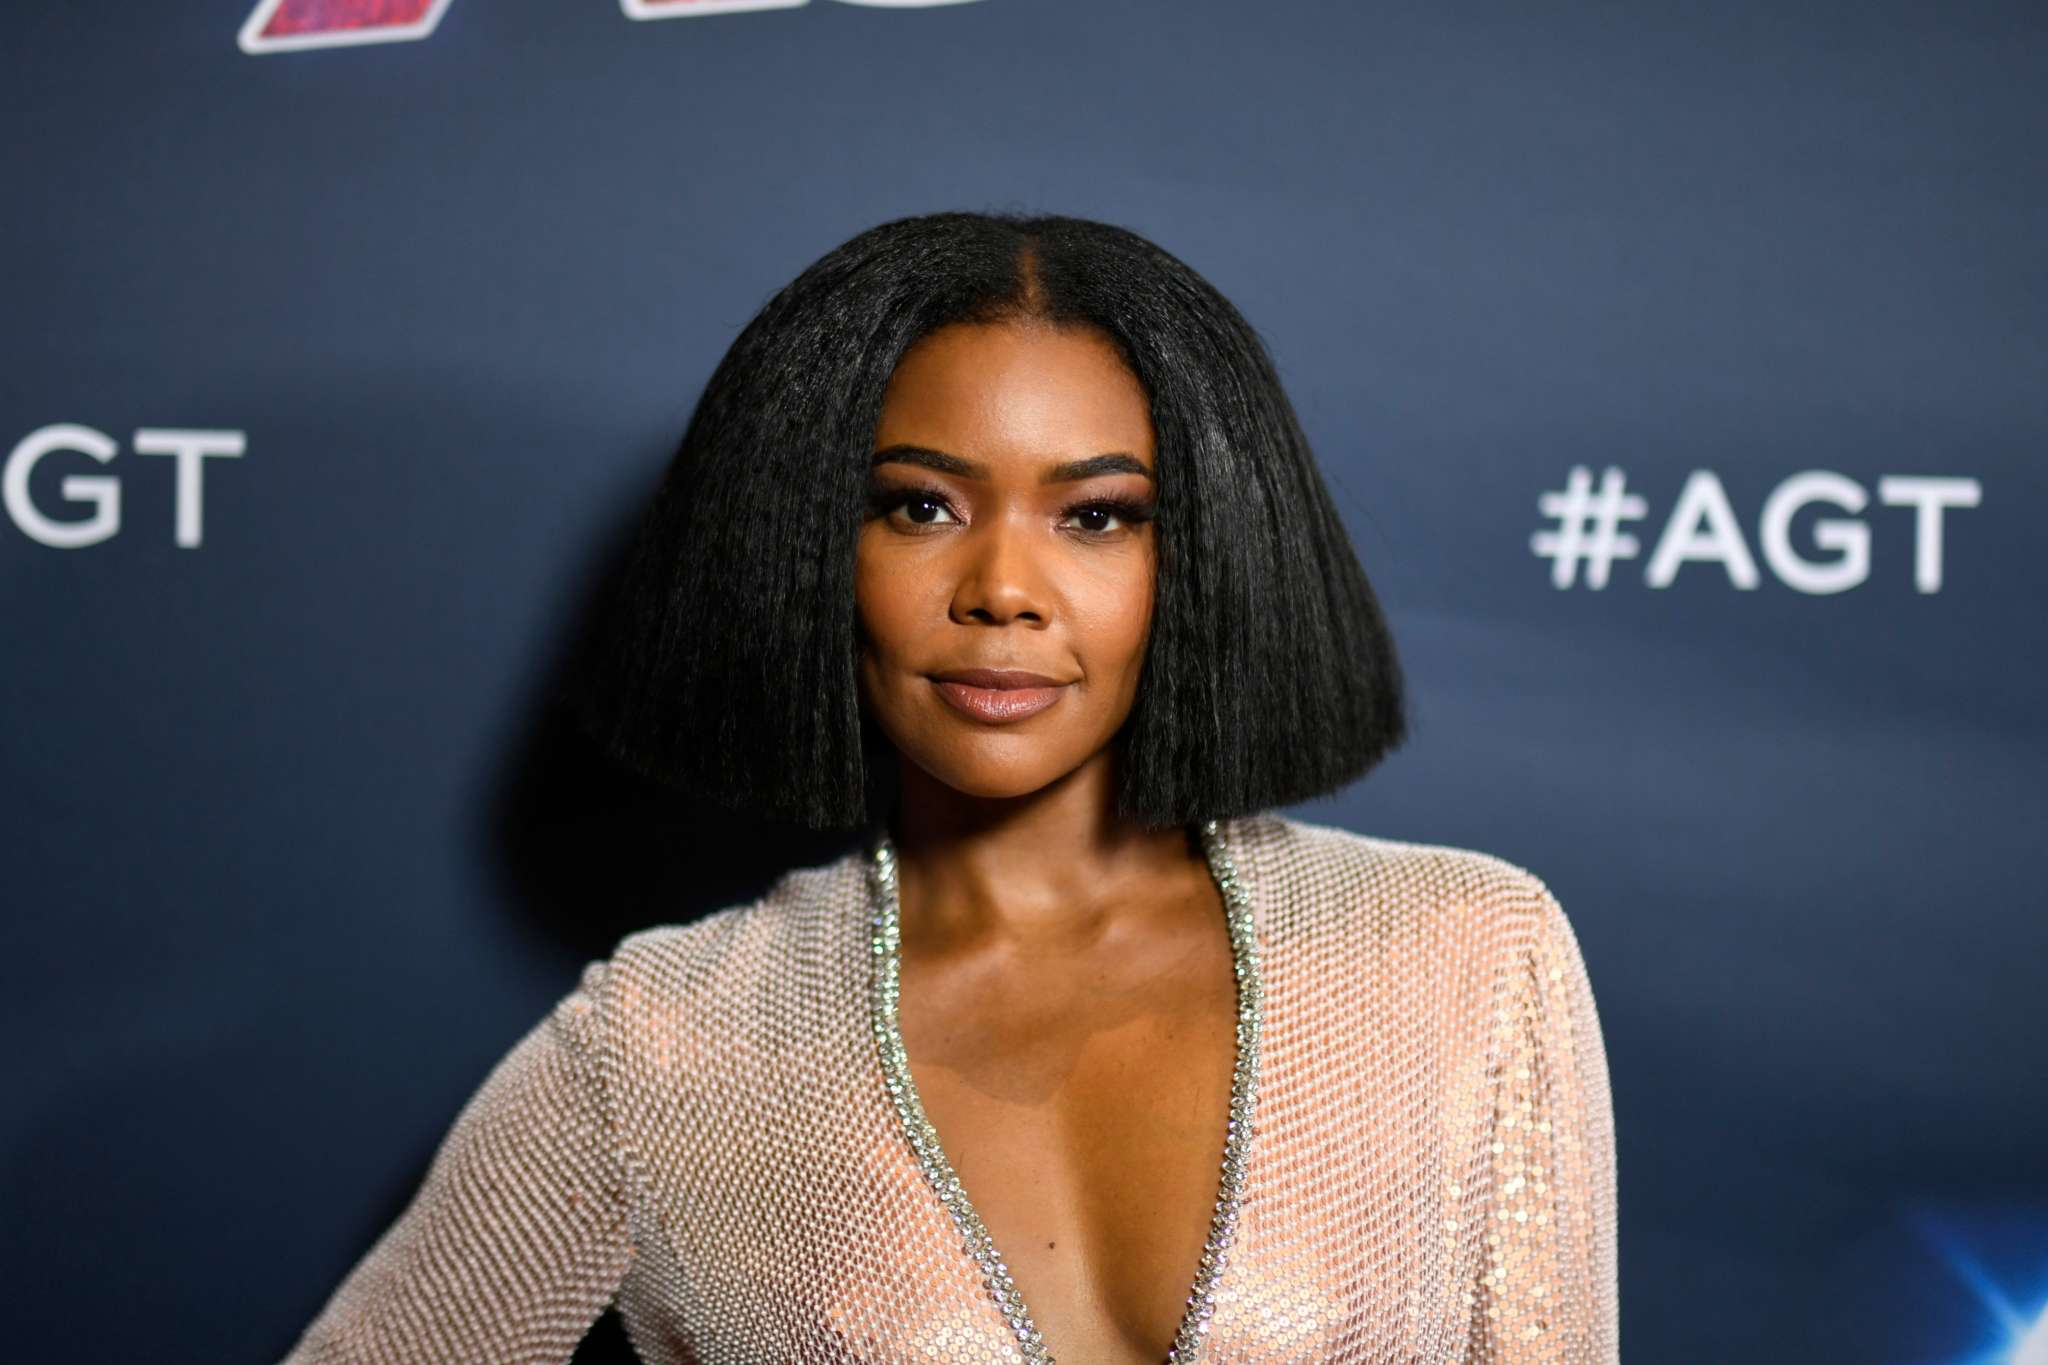 Gabrielle Union Looks Ravishing In This Miu Miu Outfit – Check Out The Photos And Clip